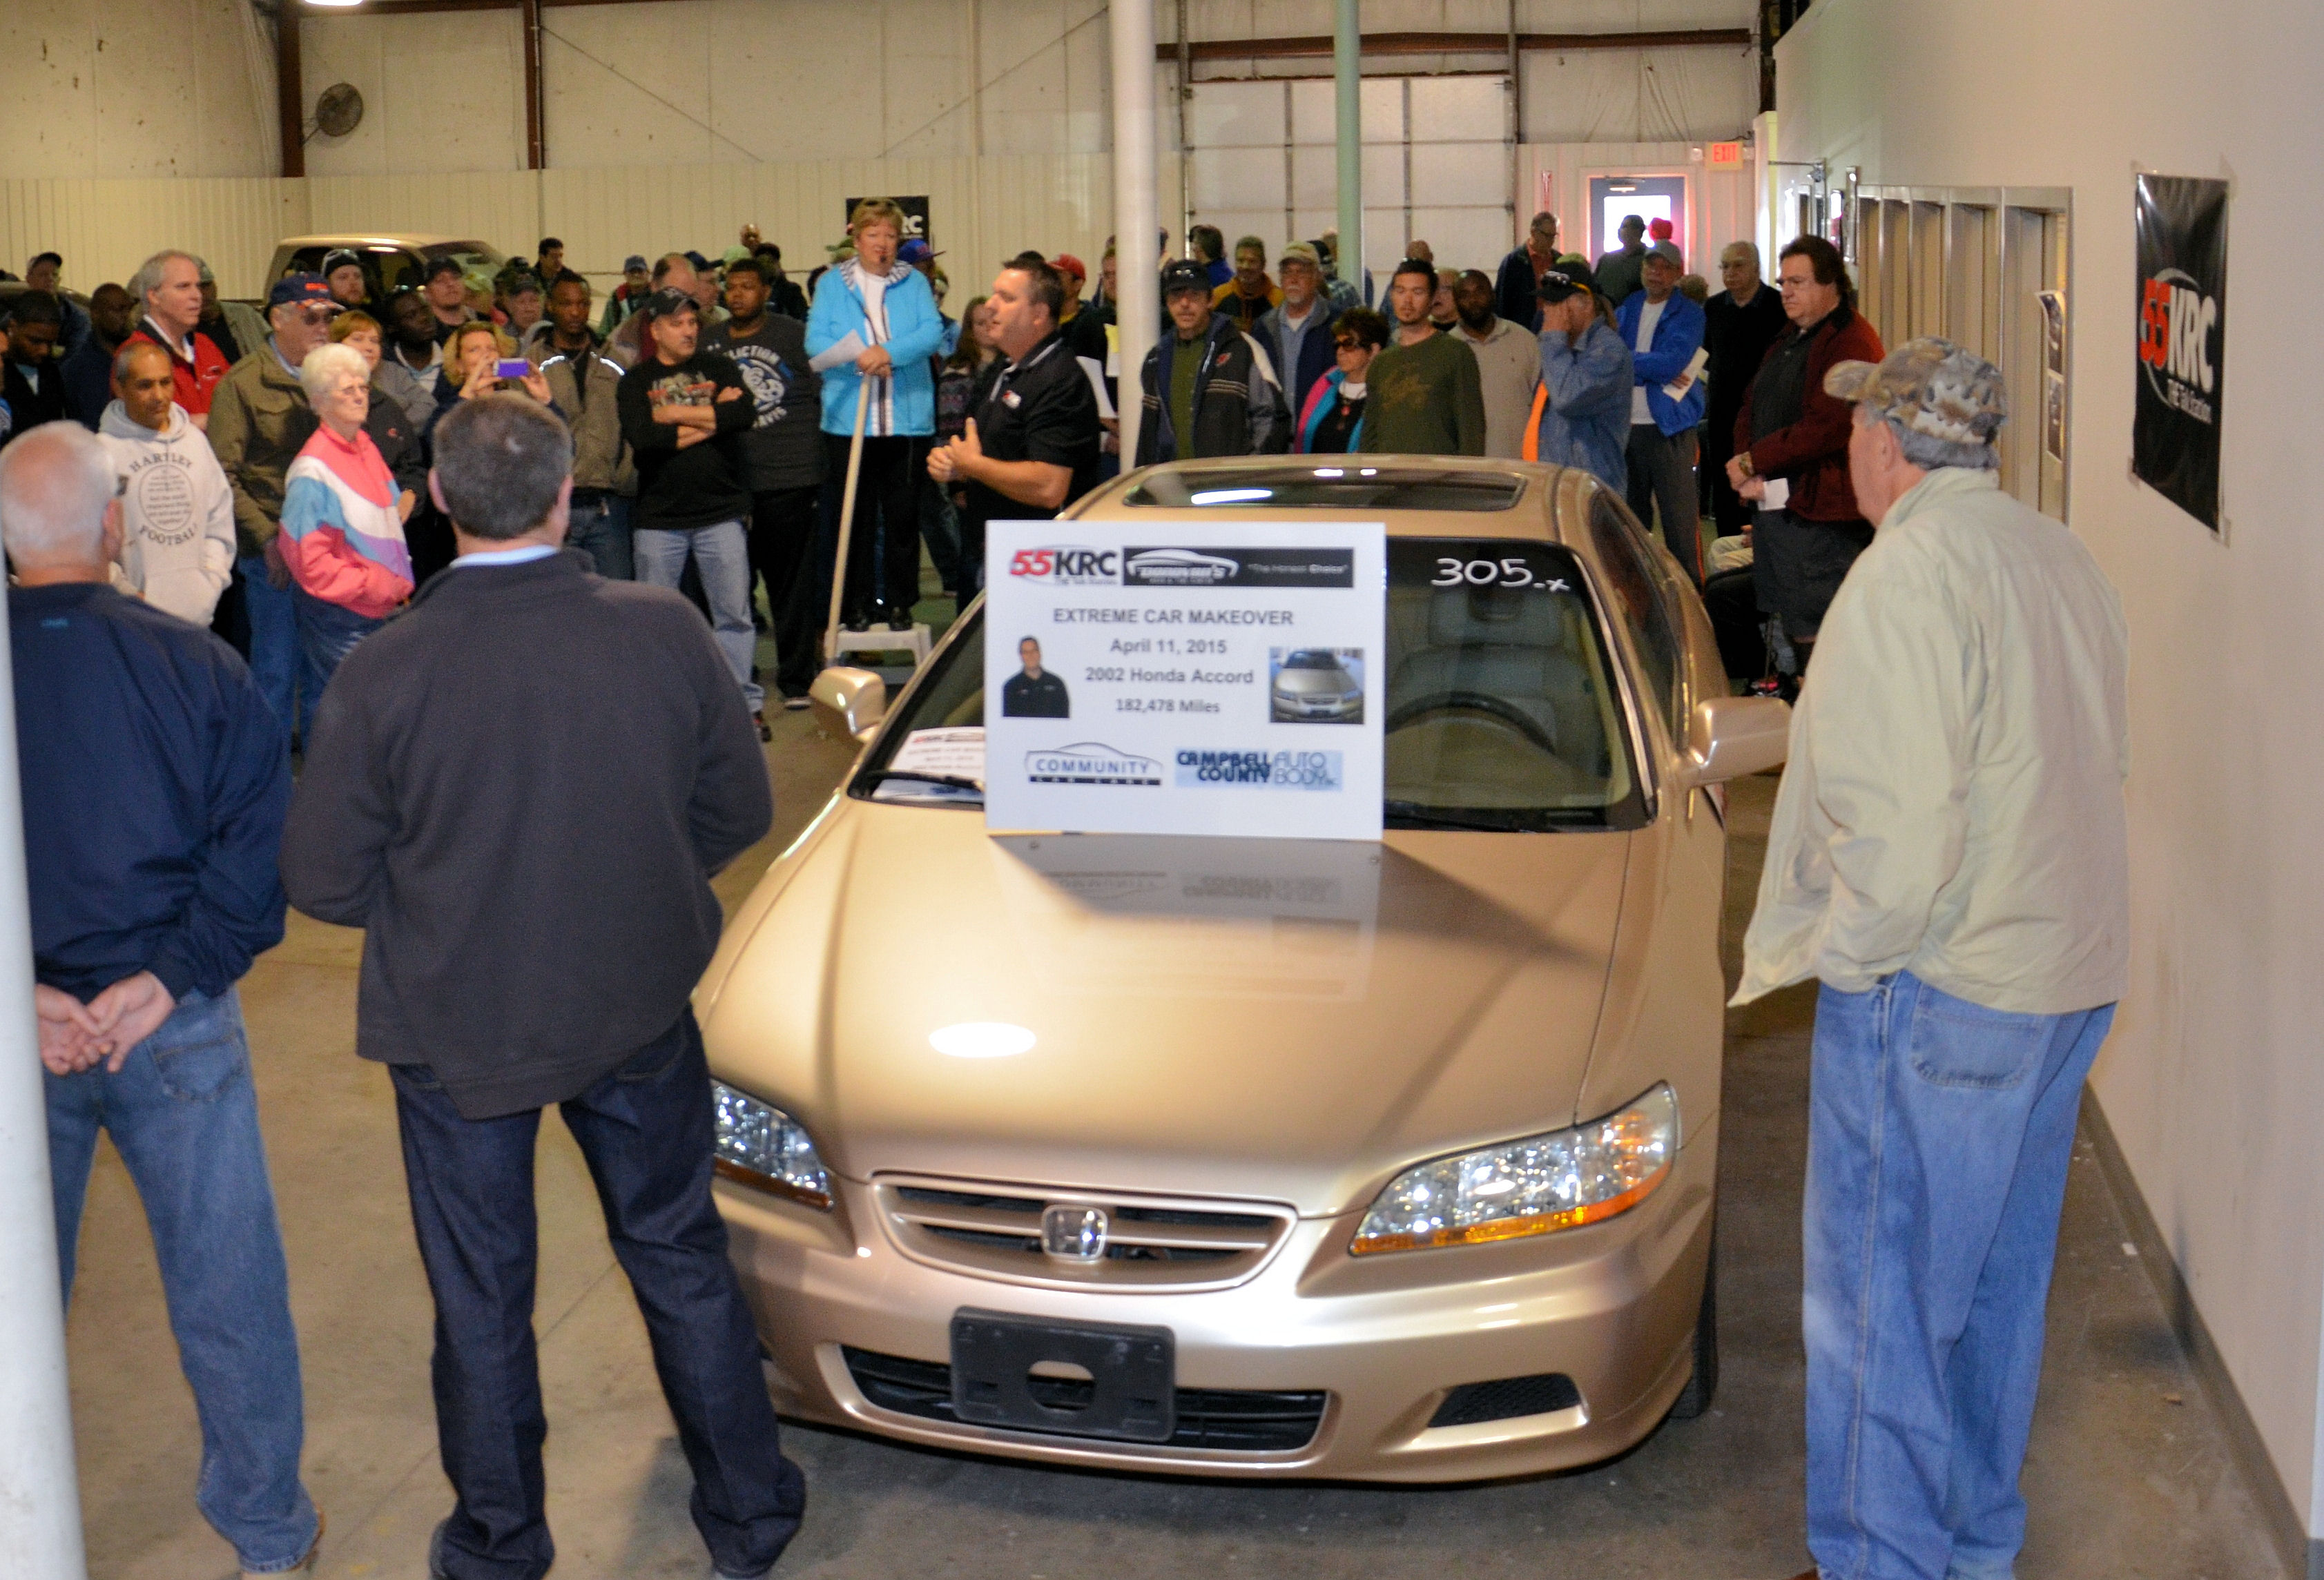 55krc spring extreme makeover car sale a success